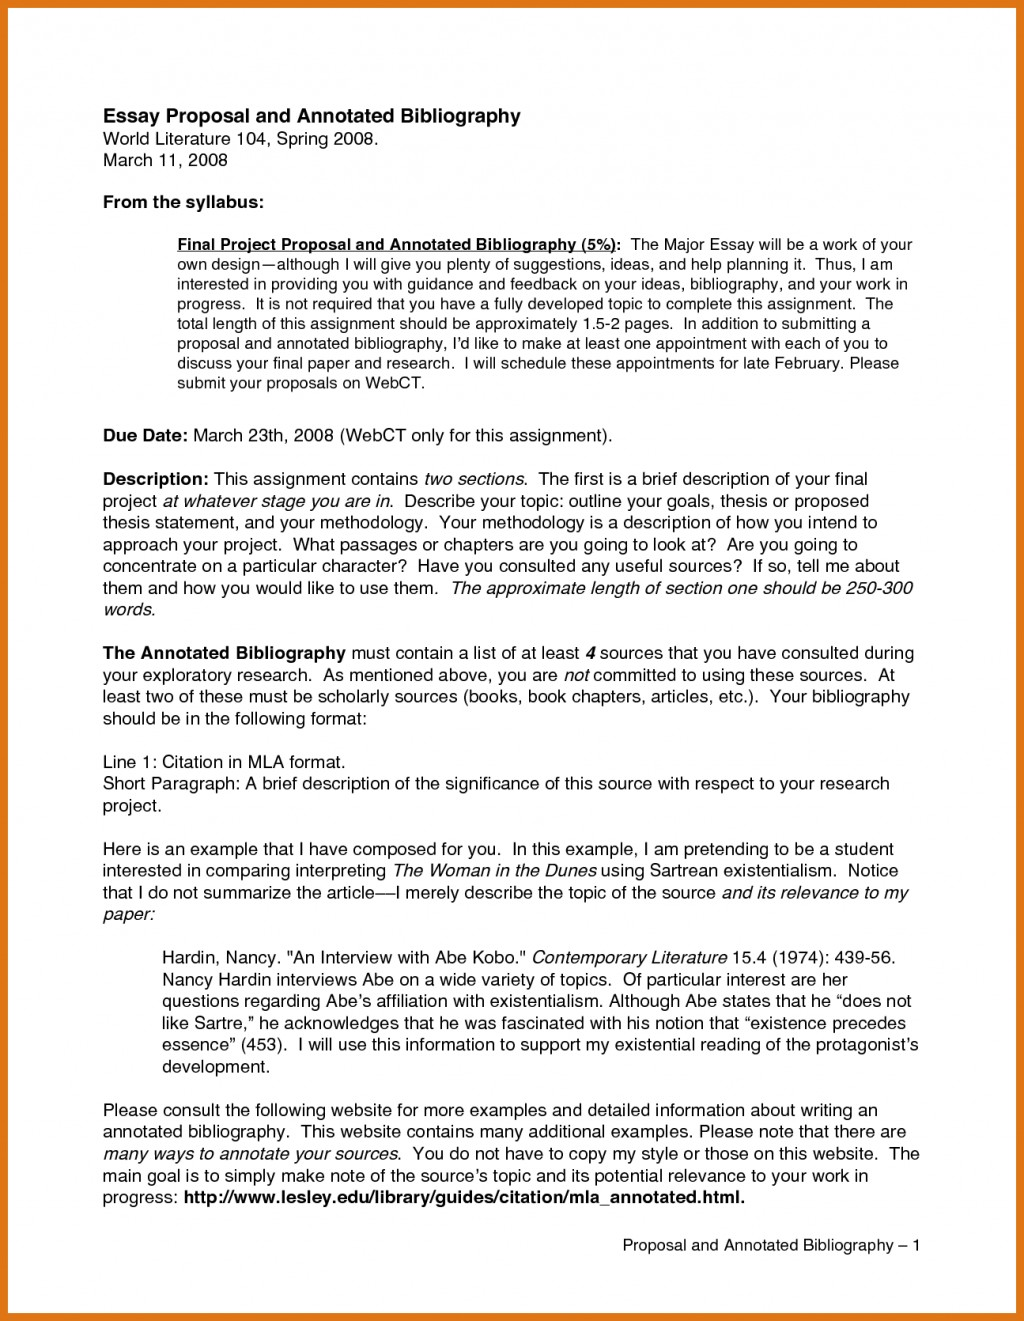 017 Research Paper Bunch Ideas Of Chicago Style Essays Citation Essay How To Cite Sources Mla Format Excellent Bibliography Sample For Fahrenheit20 1024x1321 Literary Magnificent Topic Examples Large